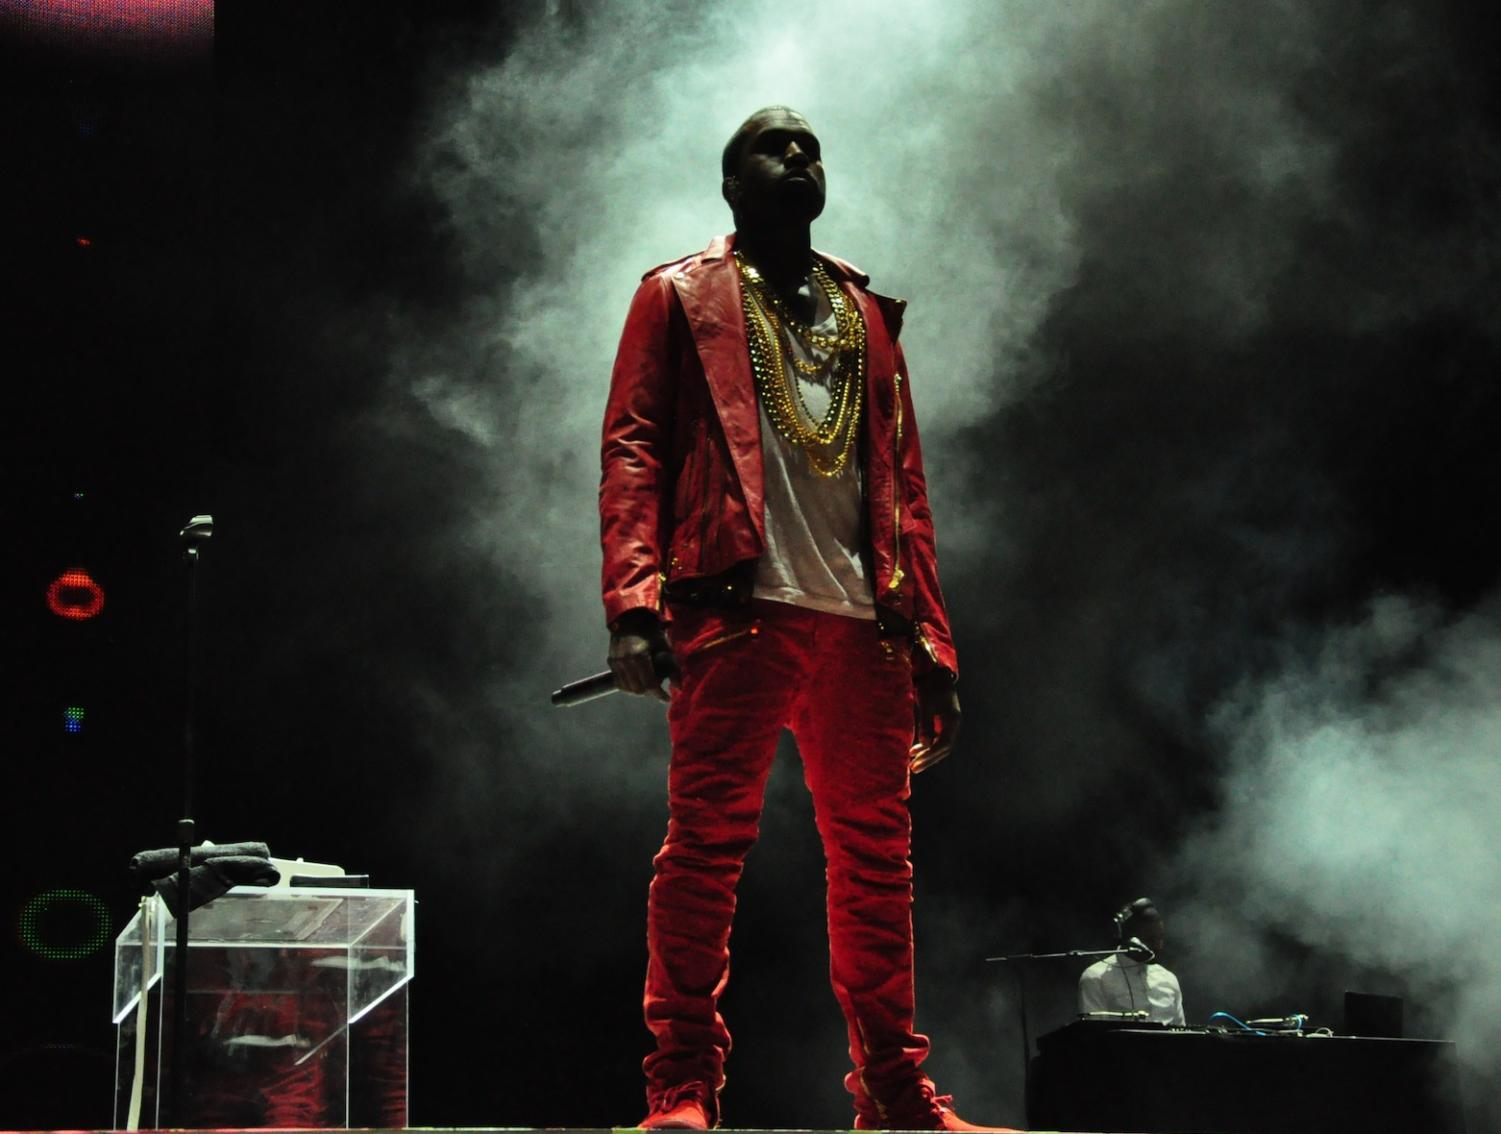 Kanye West's controversial tweets about politics have created a lot of buzz about his new music. The two tracks he released in late April were the first tracks he had released since 2016. (Photo obtained from Google Images under a Creative Commons license).